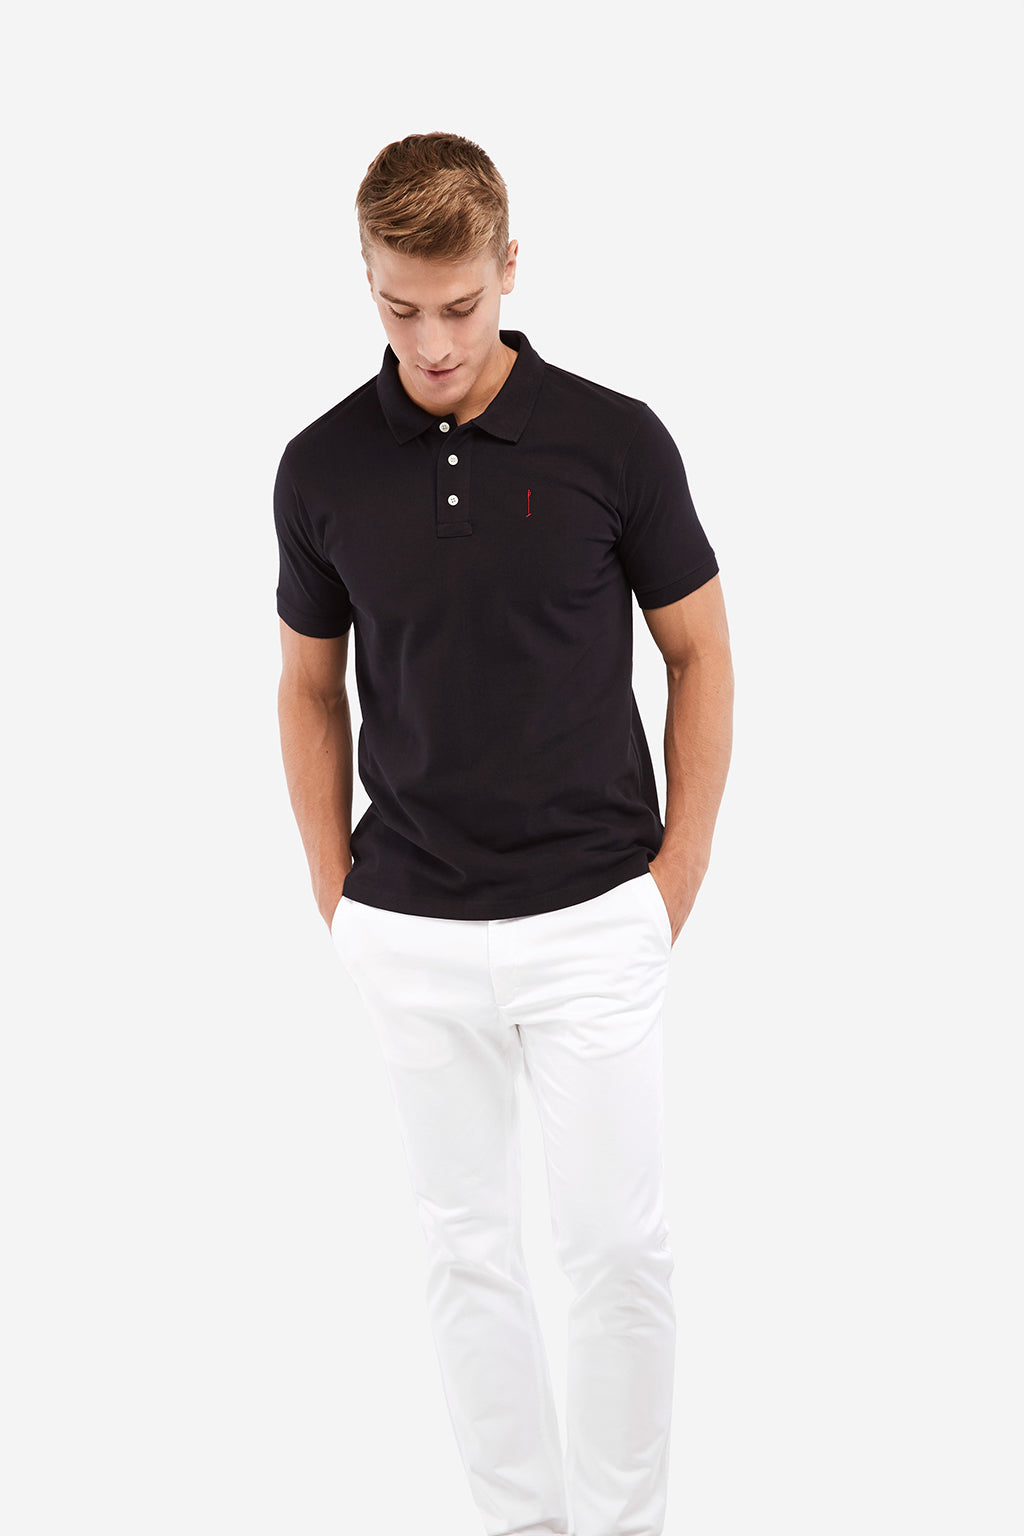 Navy blue Knot polo shirt